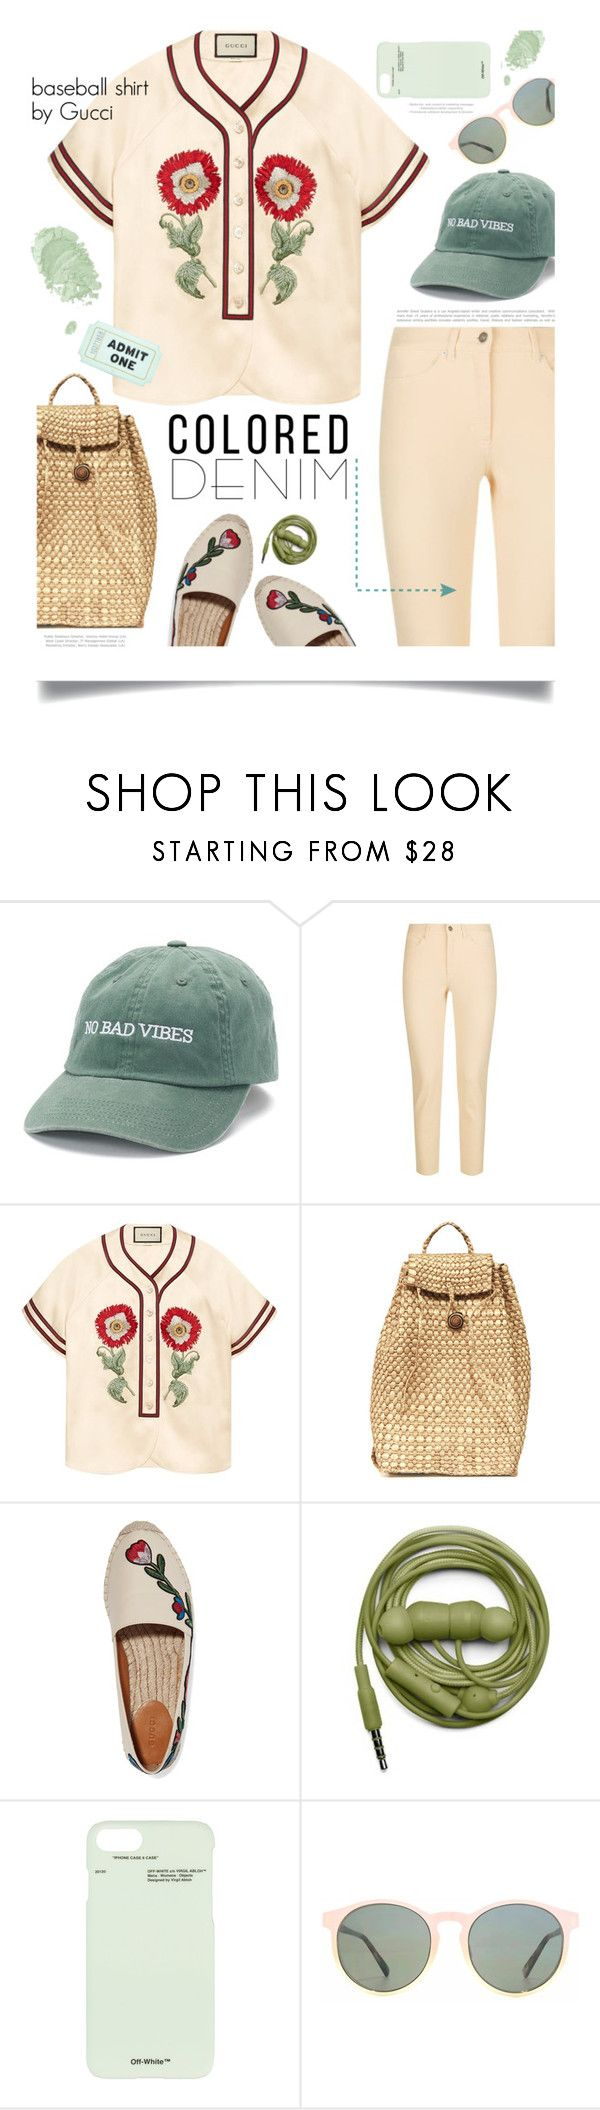 """Spring Training."" by s-elle ❤ liked on Polyvore featuring madden NYC, Escada Sport, Gucci, Urbanears, Off-White, HOOK LDN, Nails Inc., Kate Spade and coloredjeans"